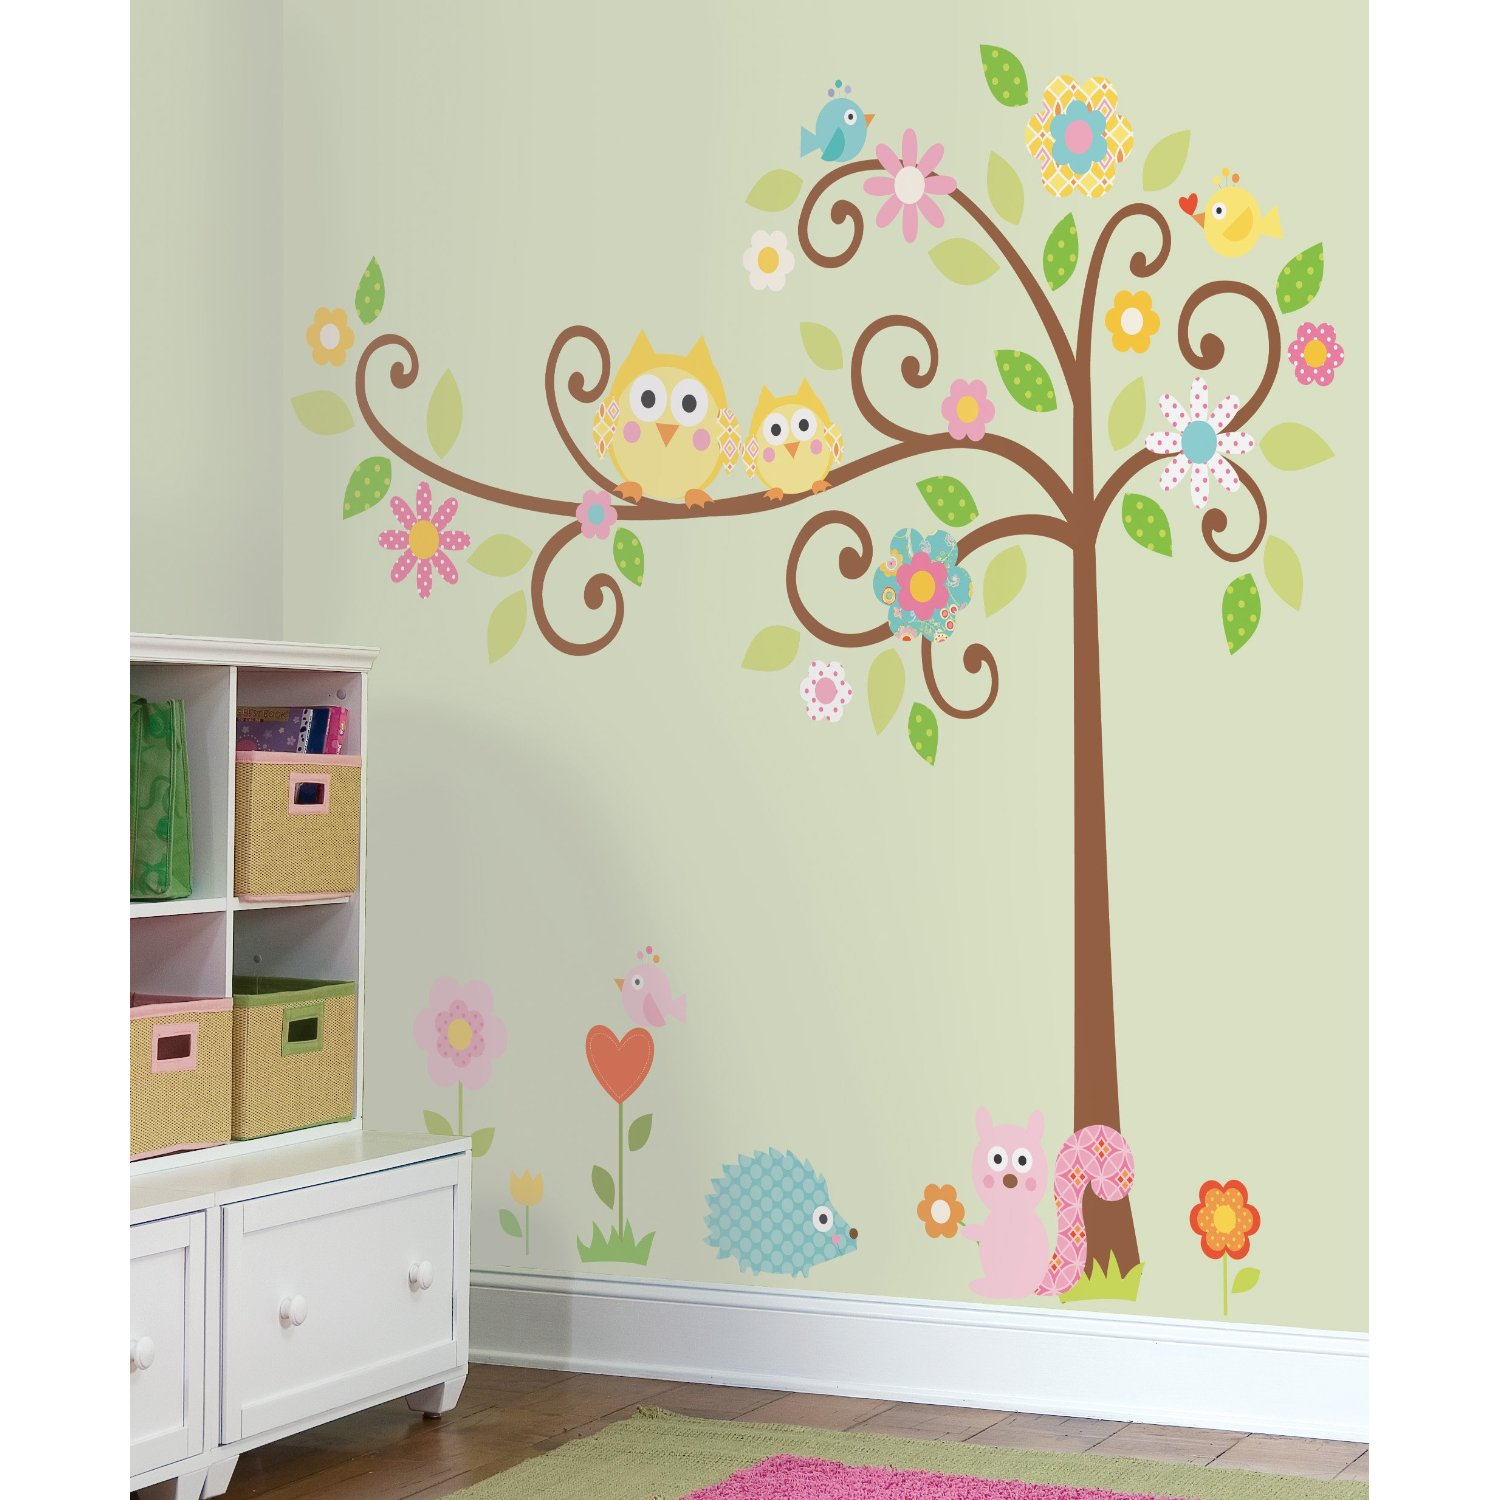 Nice Room mates tree wall decal